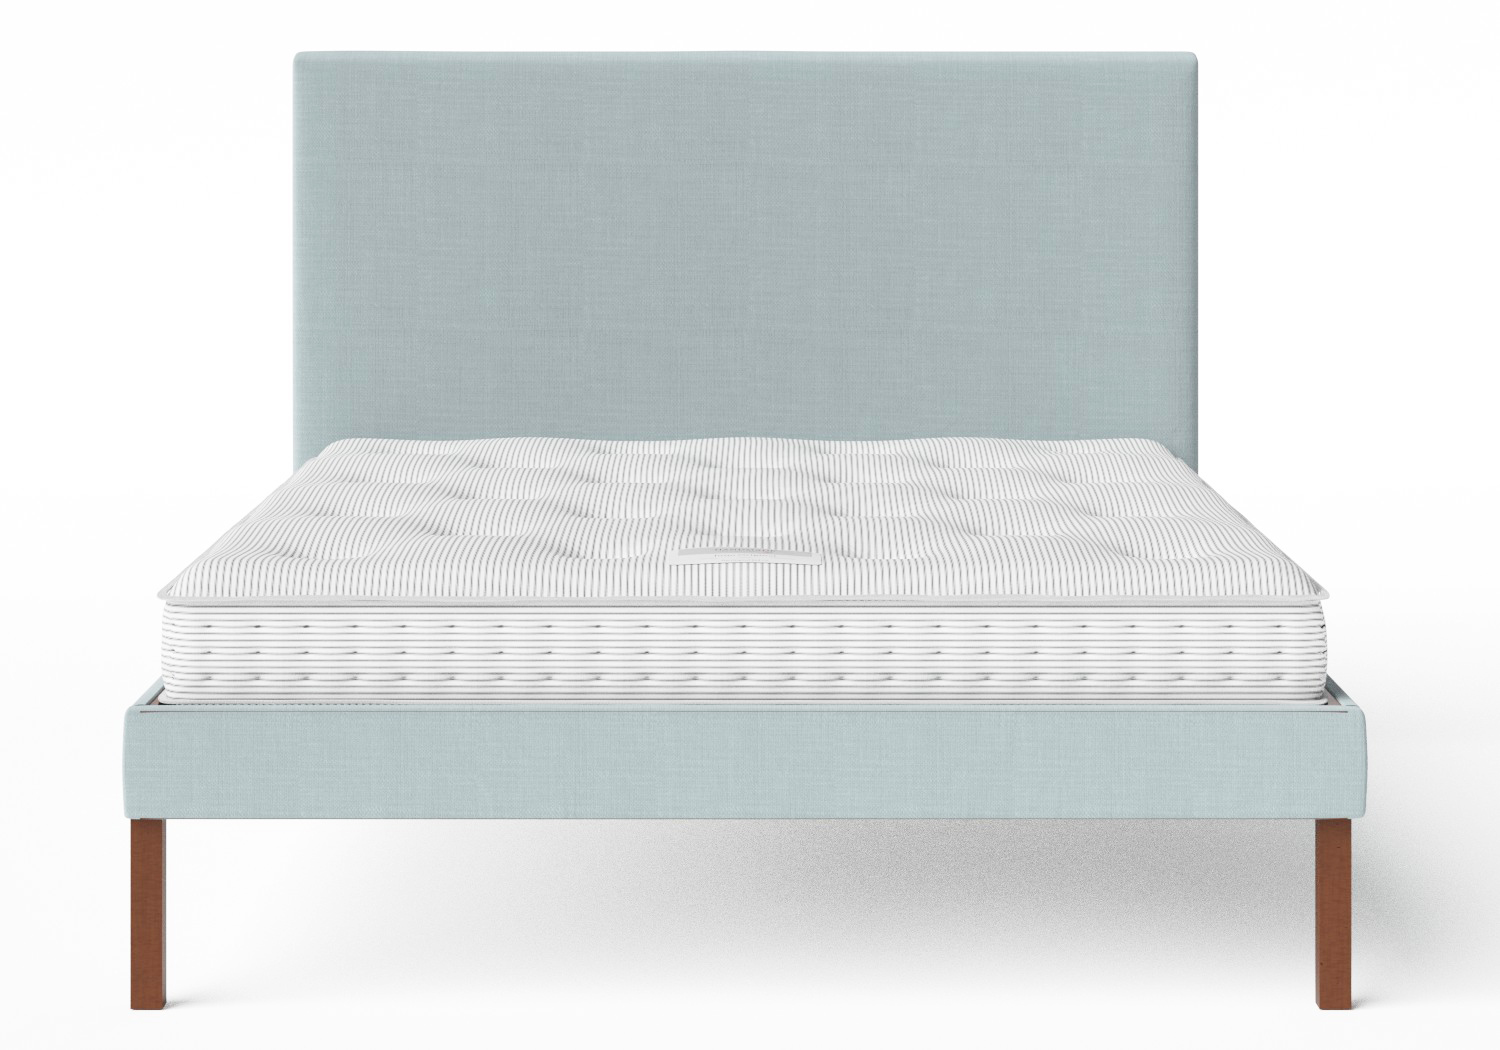 Misaki Upholstered Bed in Wedgewood fabric shown with Juno 1 mattress